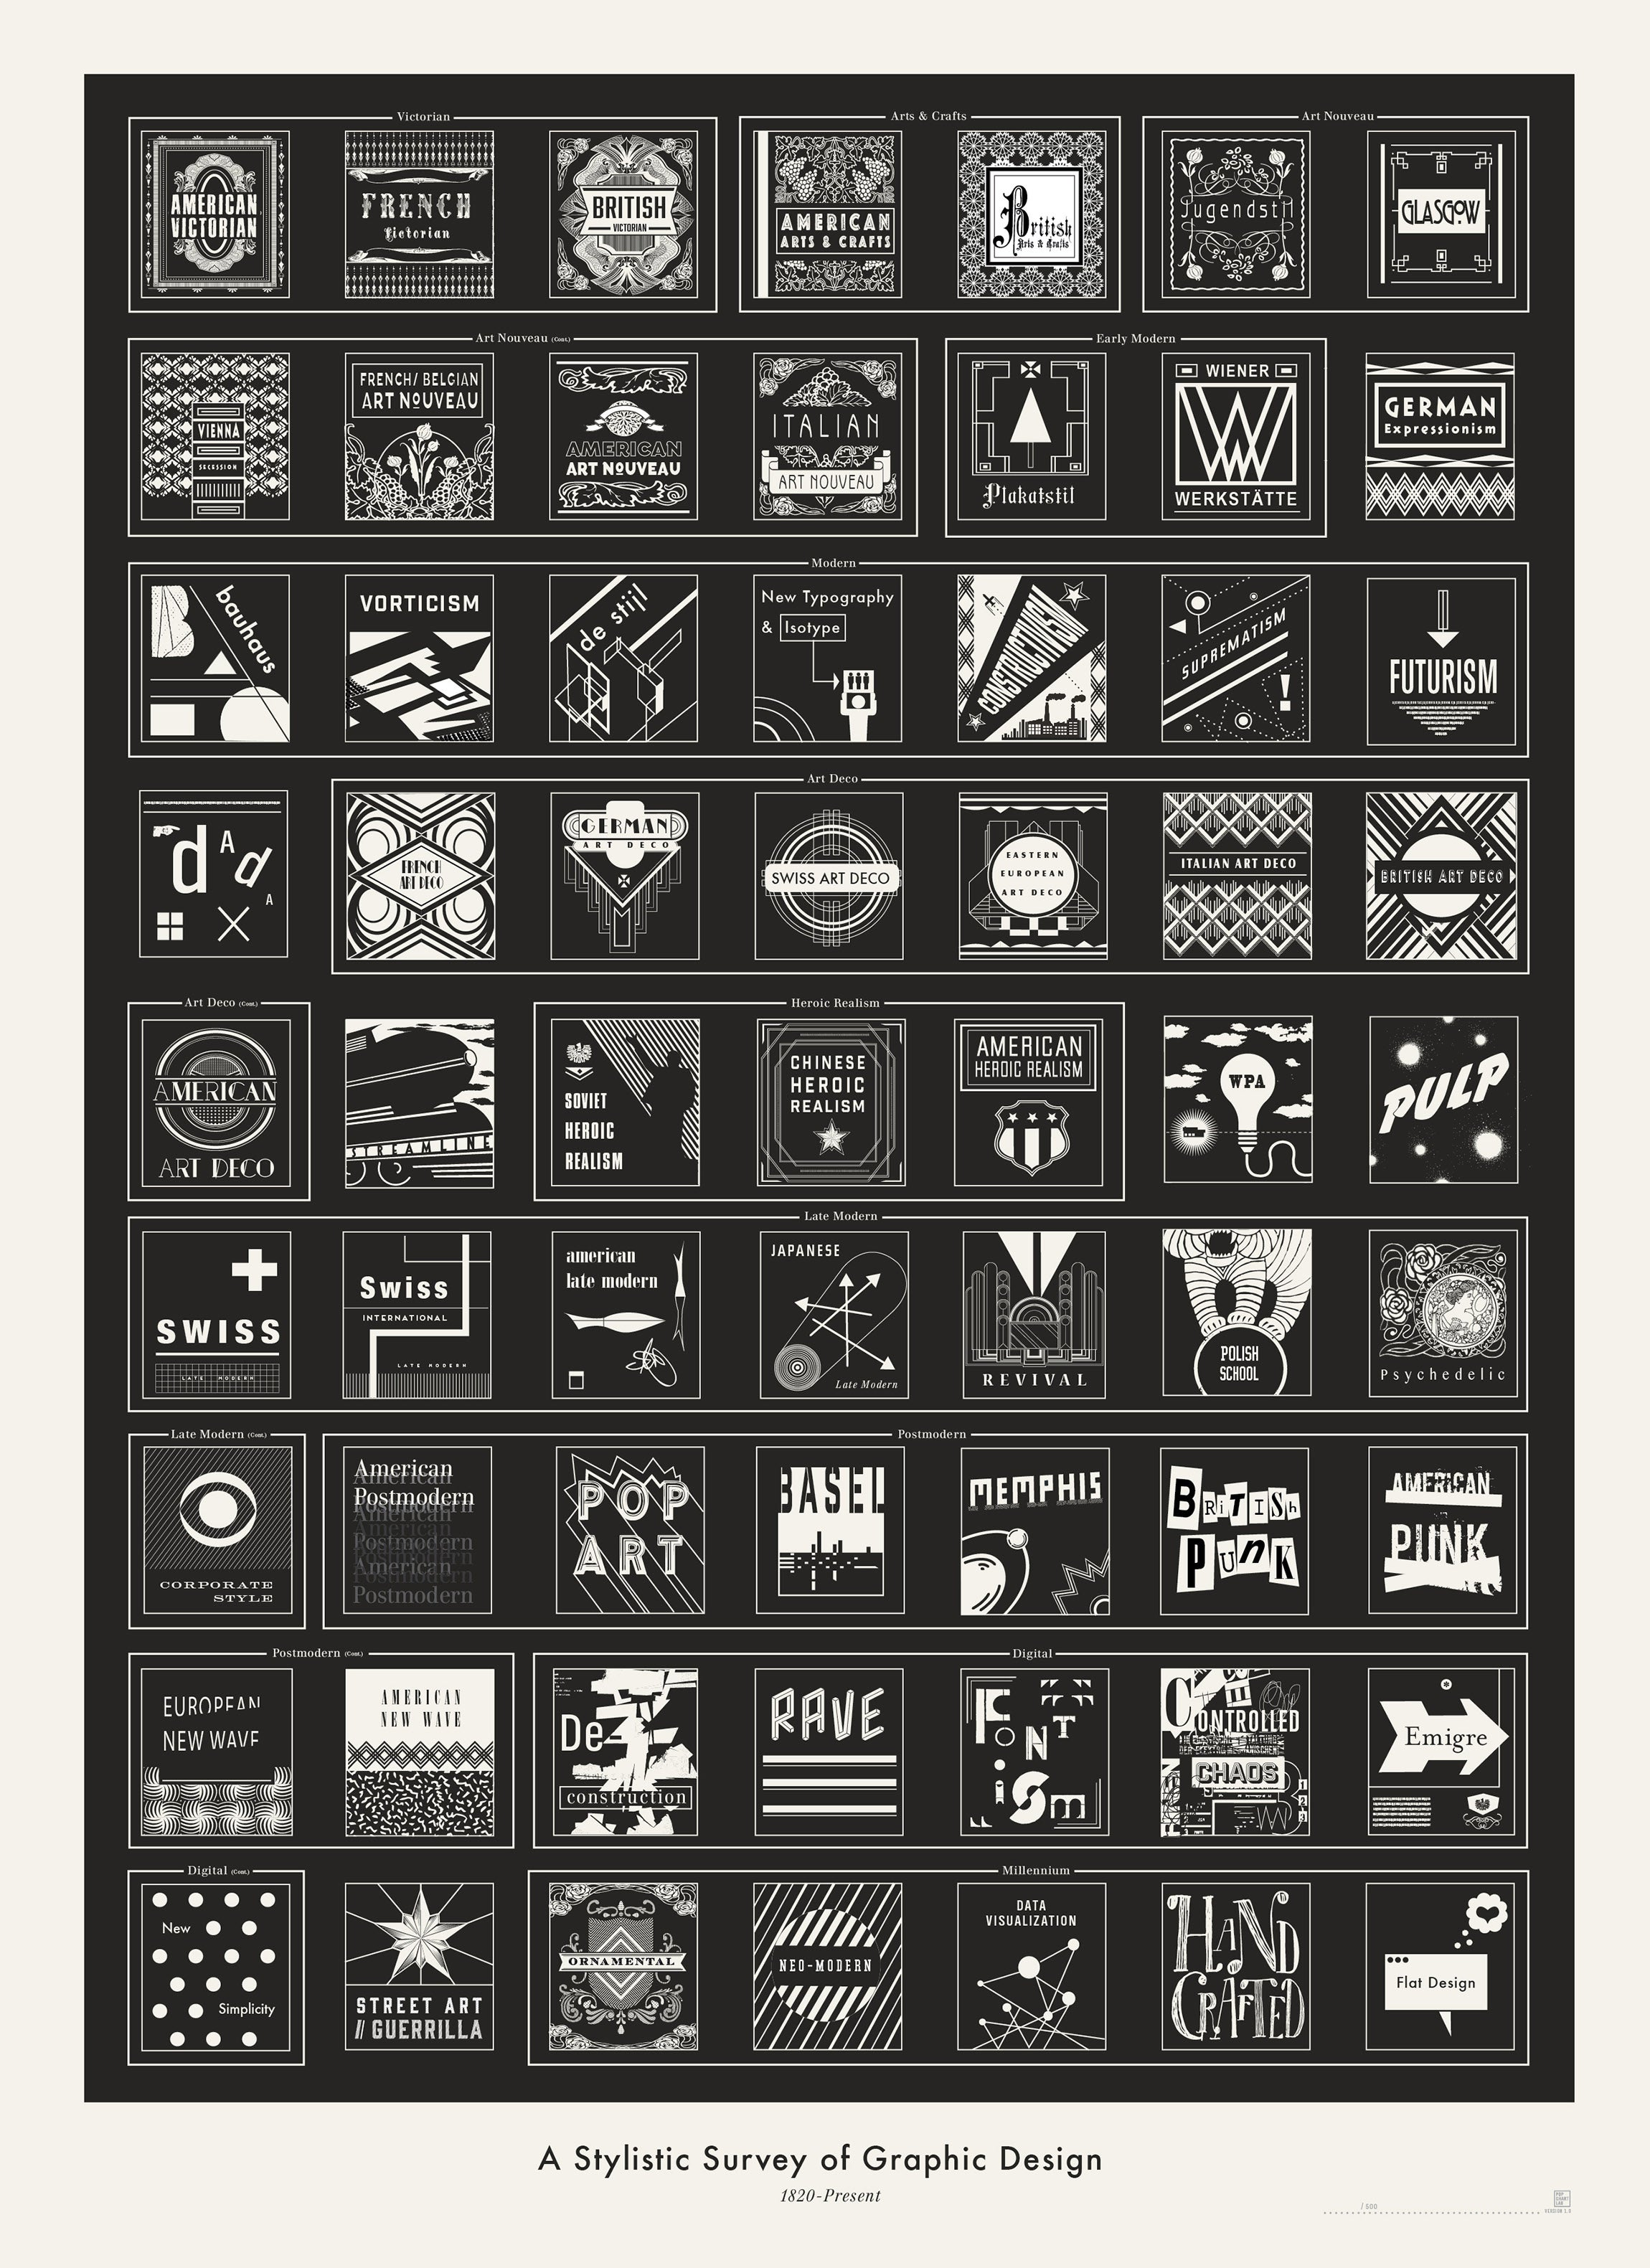 Get to Know 63 Styles of Graphic Design With One Simple Poster